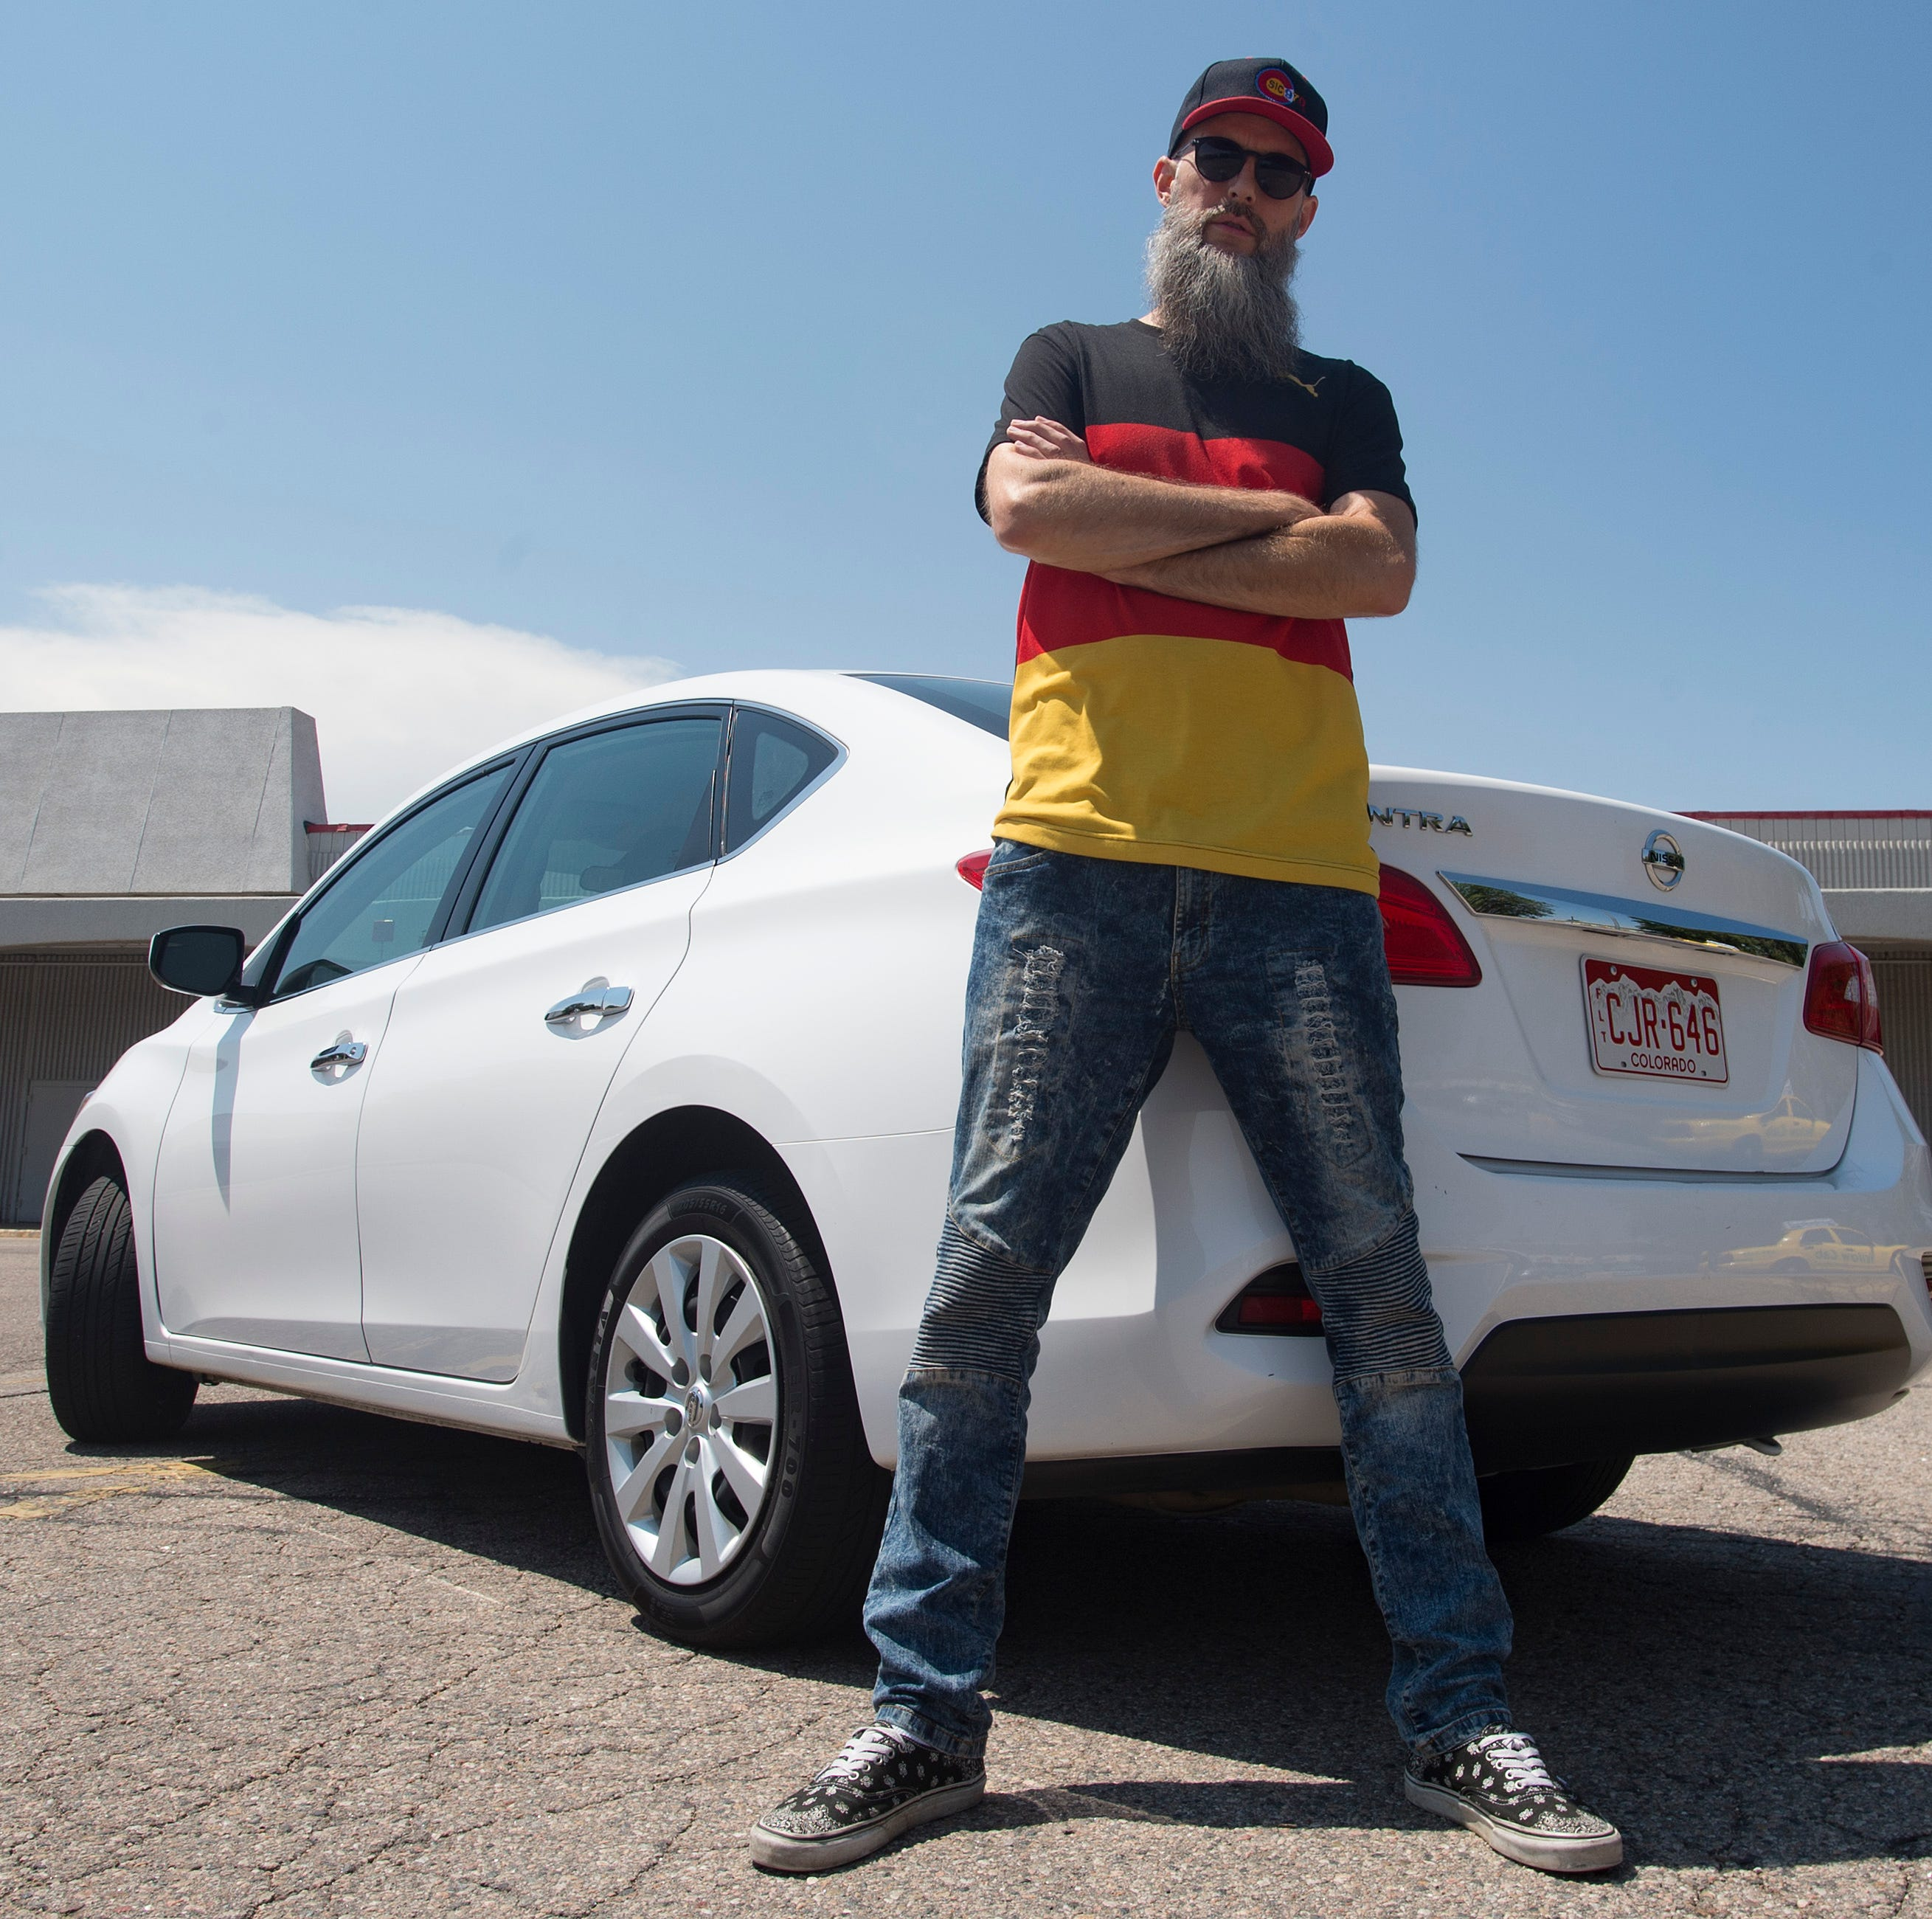 This Fort Collins Lyft driver came from Germany for rap career. Check out our ride with him.